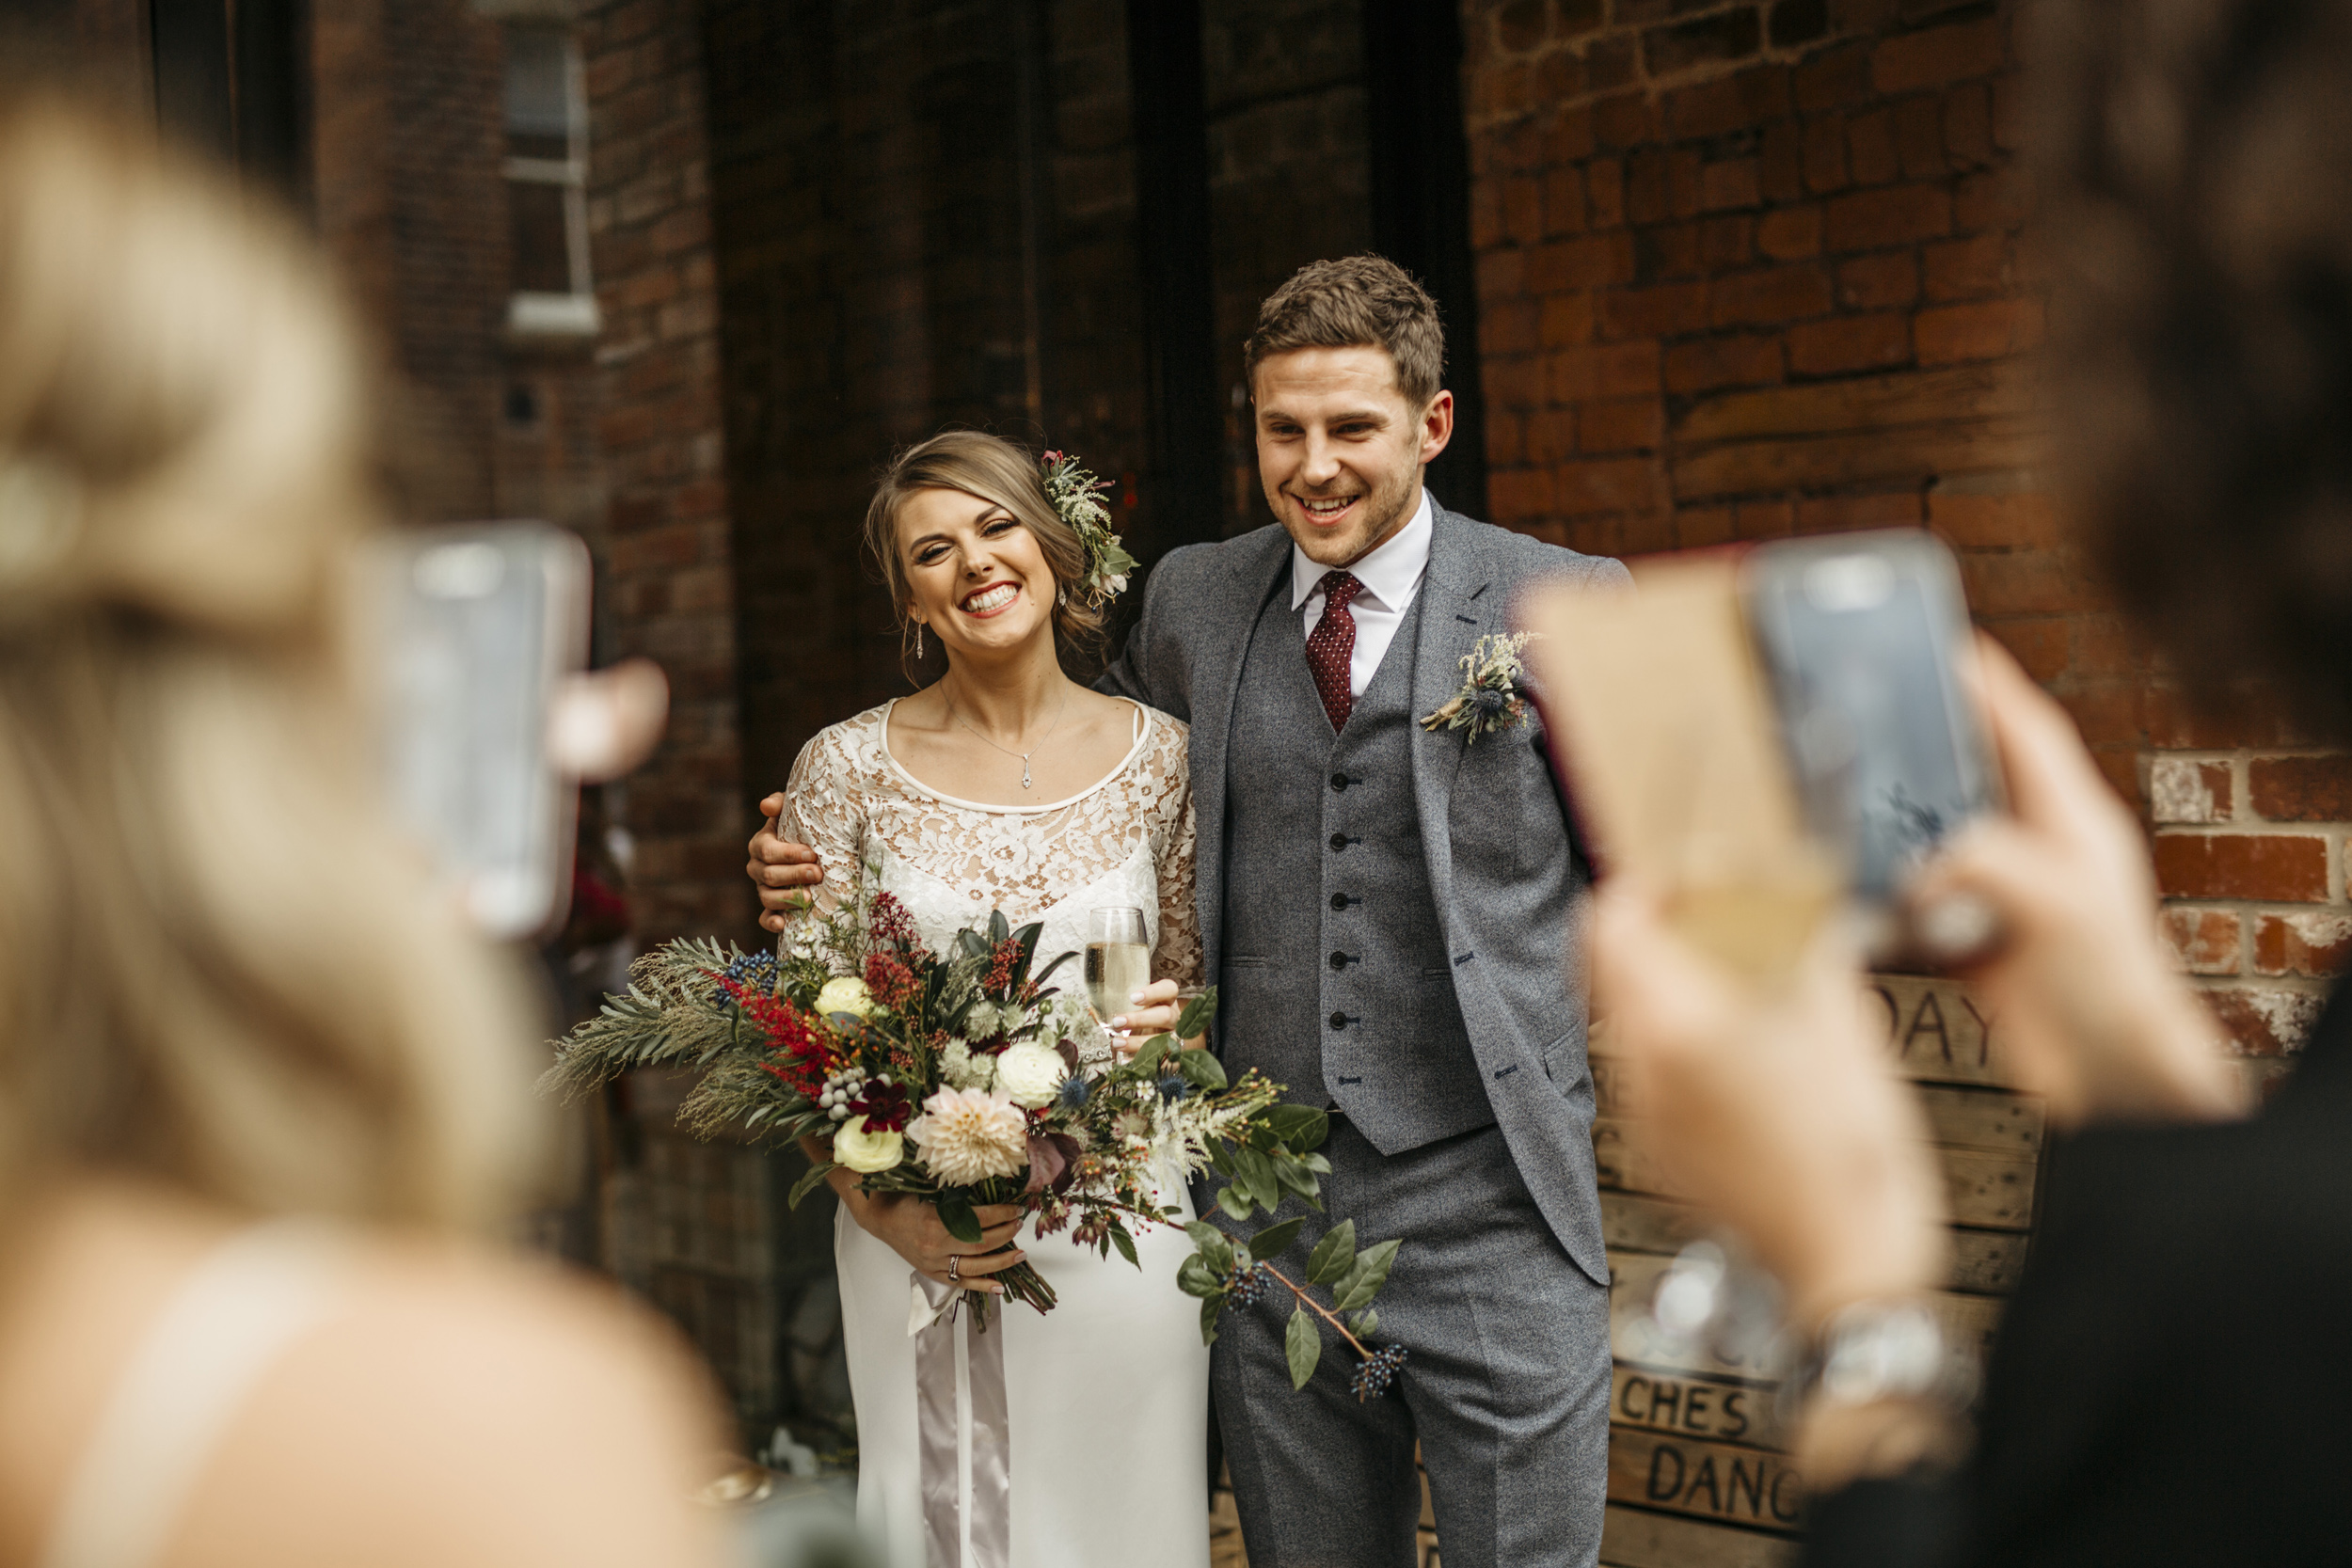 Aimi-Kate-Beaumont-Lace-Wedding-Dress-Sheffield-Kindred-Photography-13.jpg